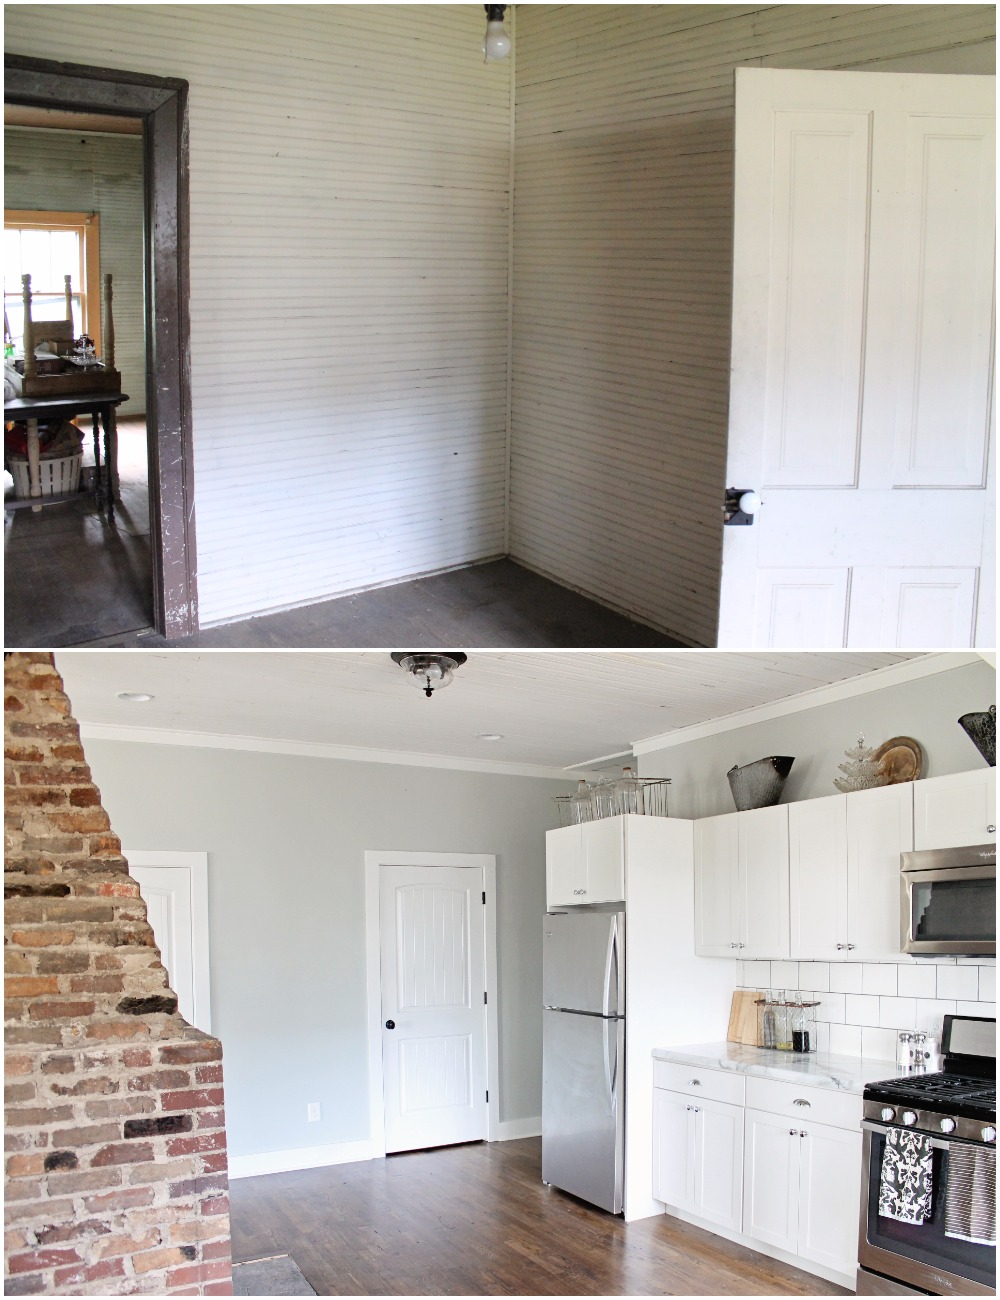 Elizabeth Burns Design  Budget-Friendly Fixer Upper Farmhouse Before and After House Flip - DIY Kitchen with Formica Marble Counter White Shaker Cabinets Barn Door - Sherwin Williams Silver Strand (4).jpg